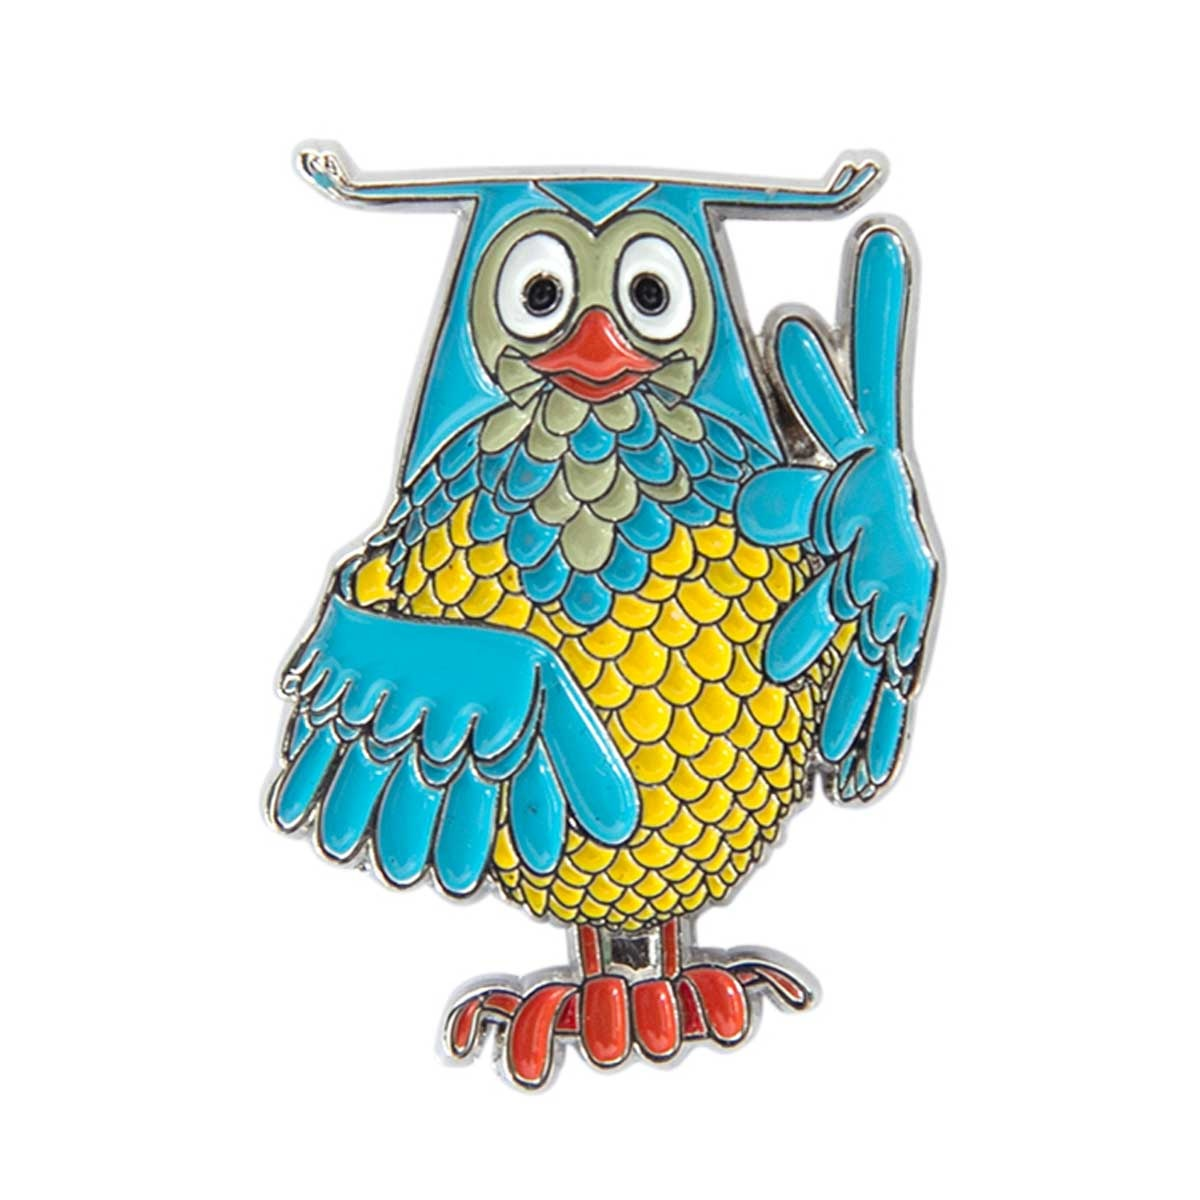 Mr. Owl Pin